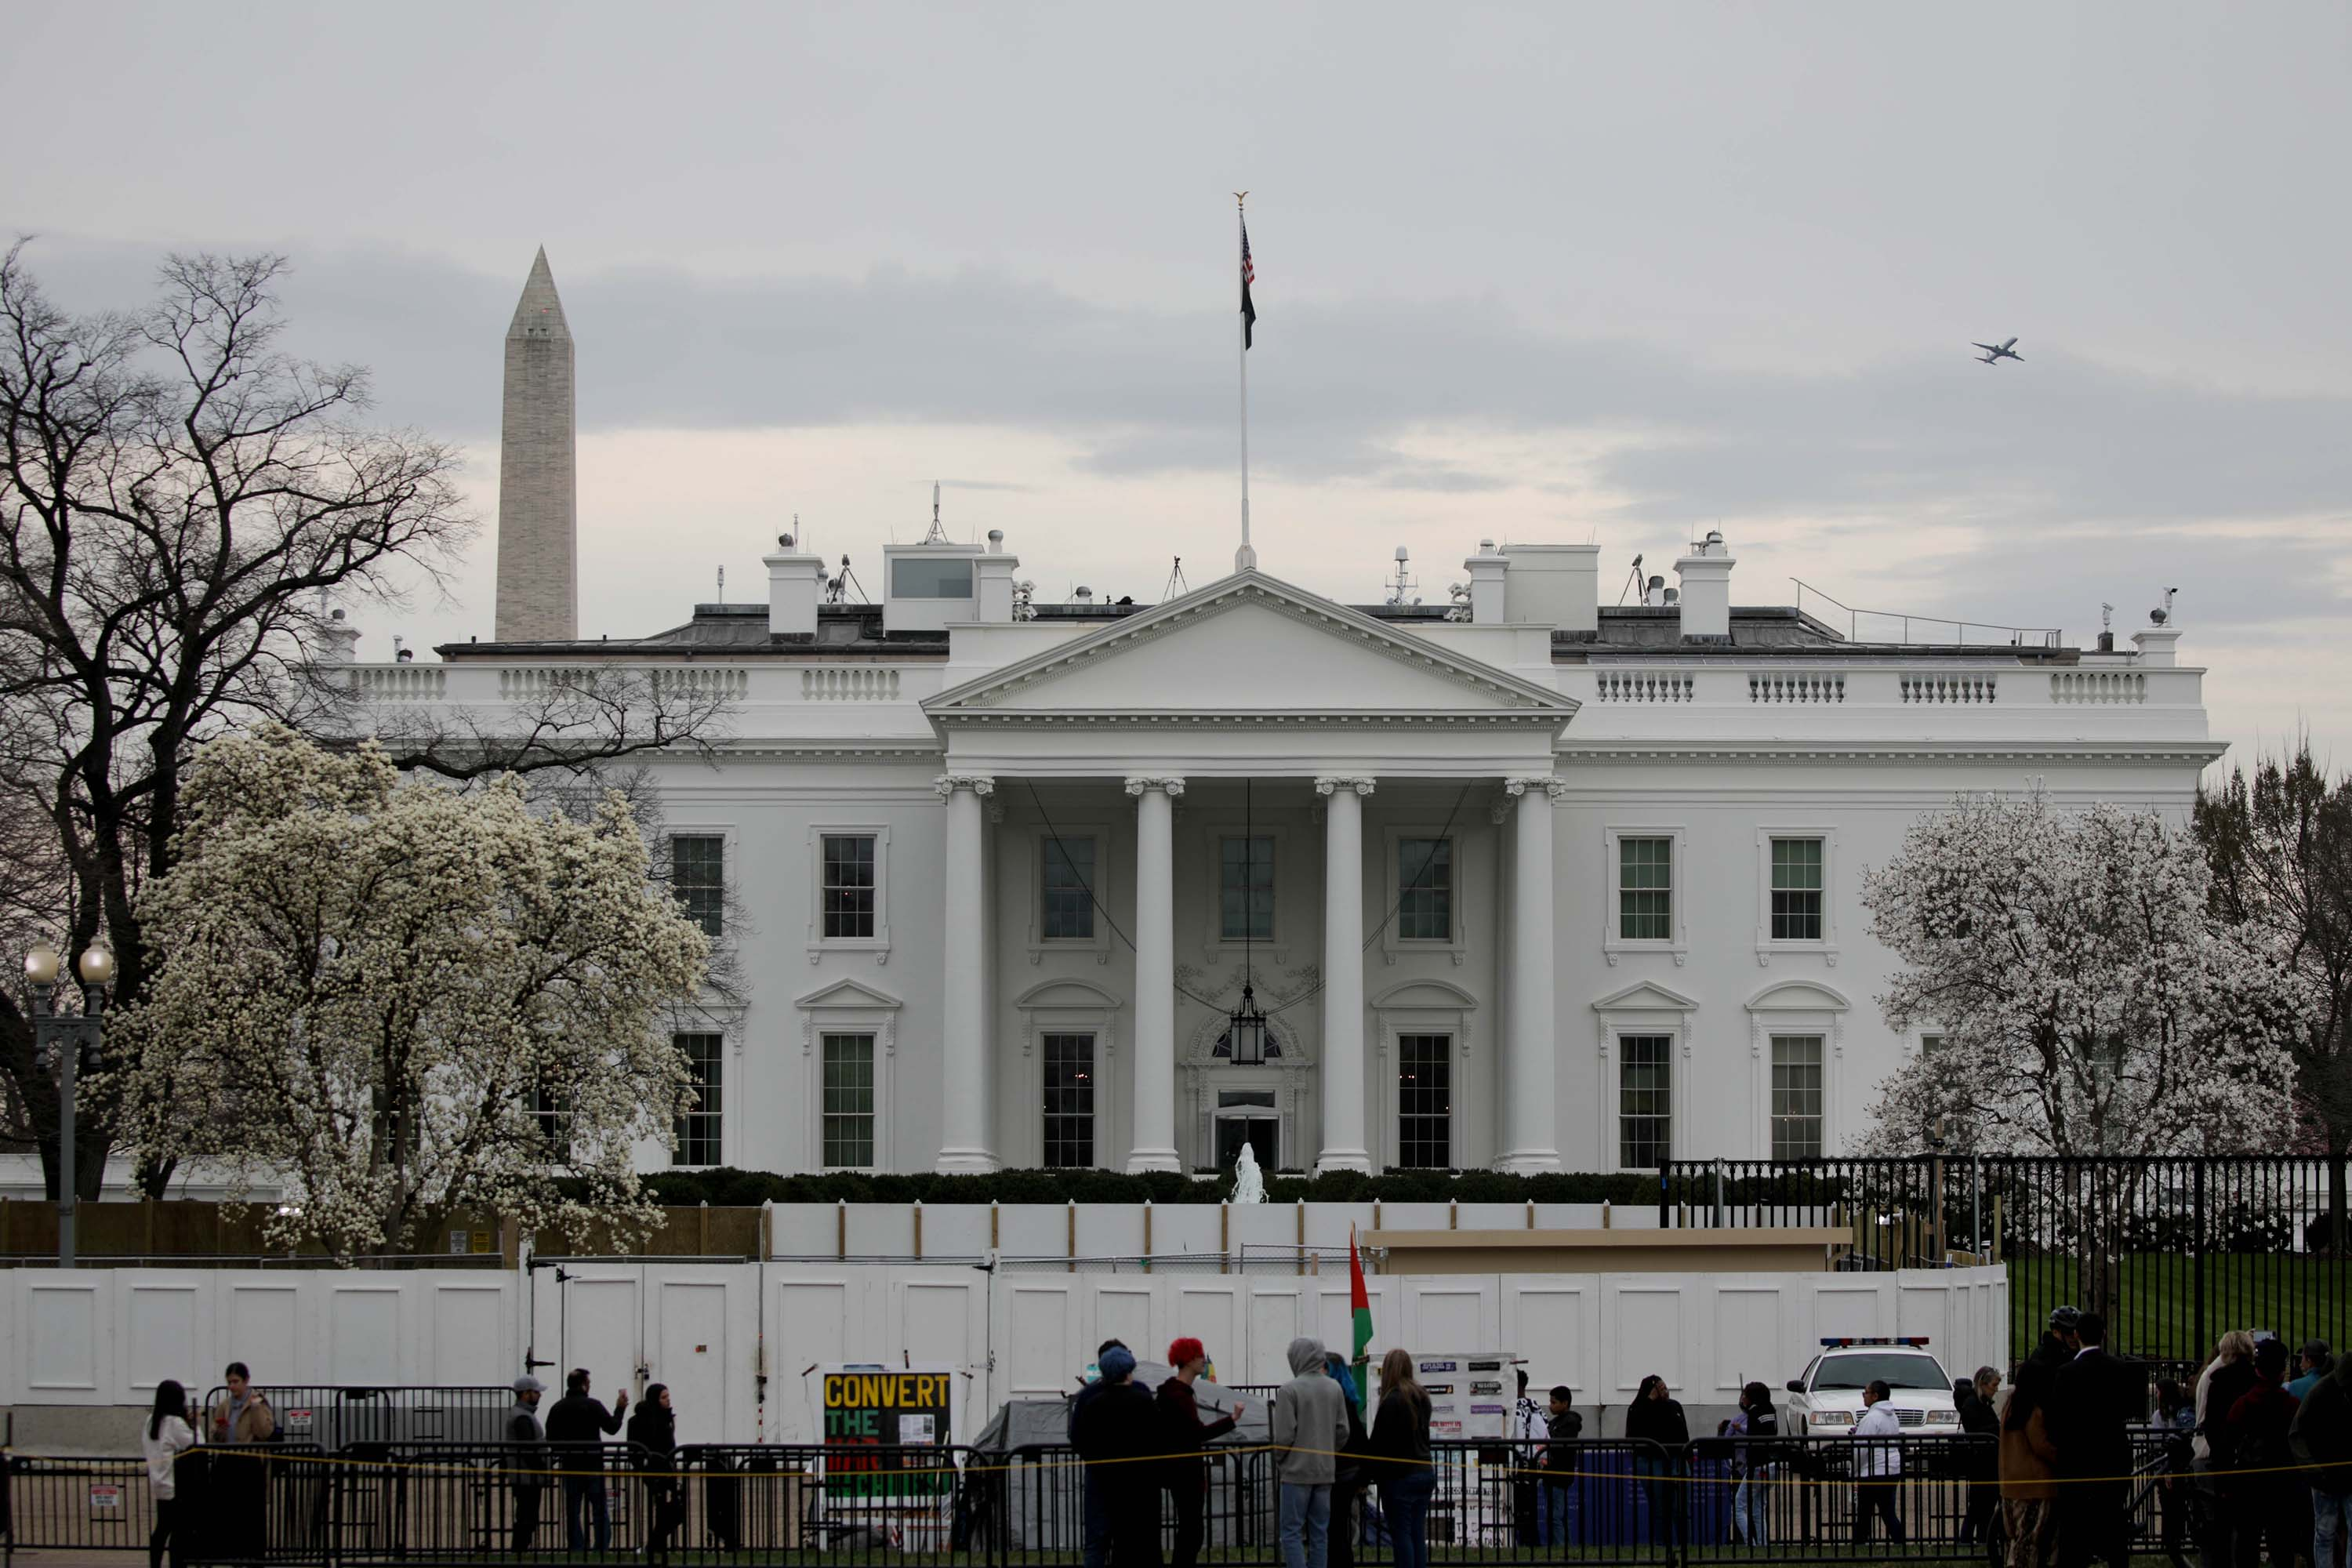 A view of the White House in Washington, DC, on March 11.